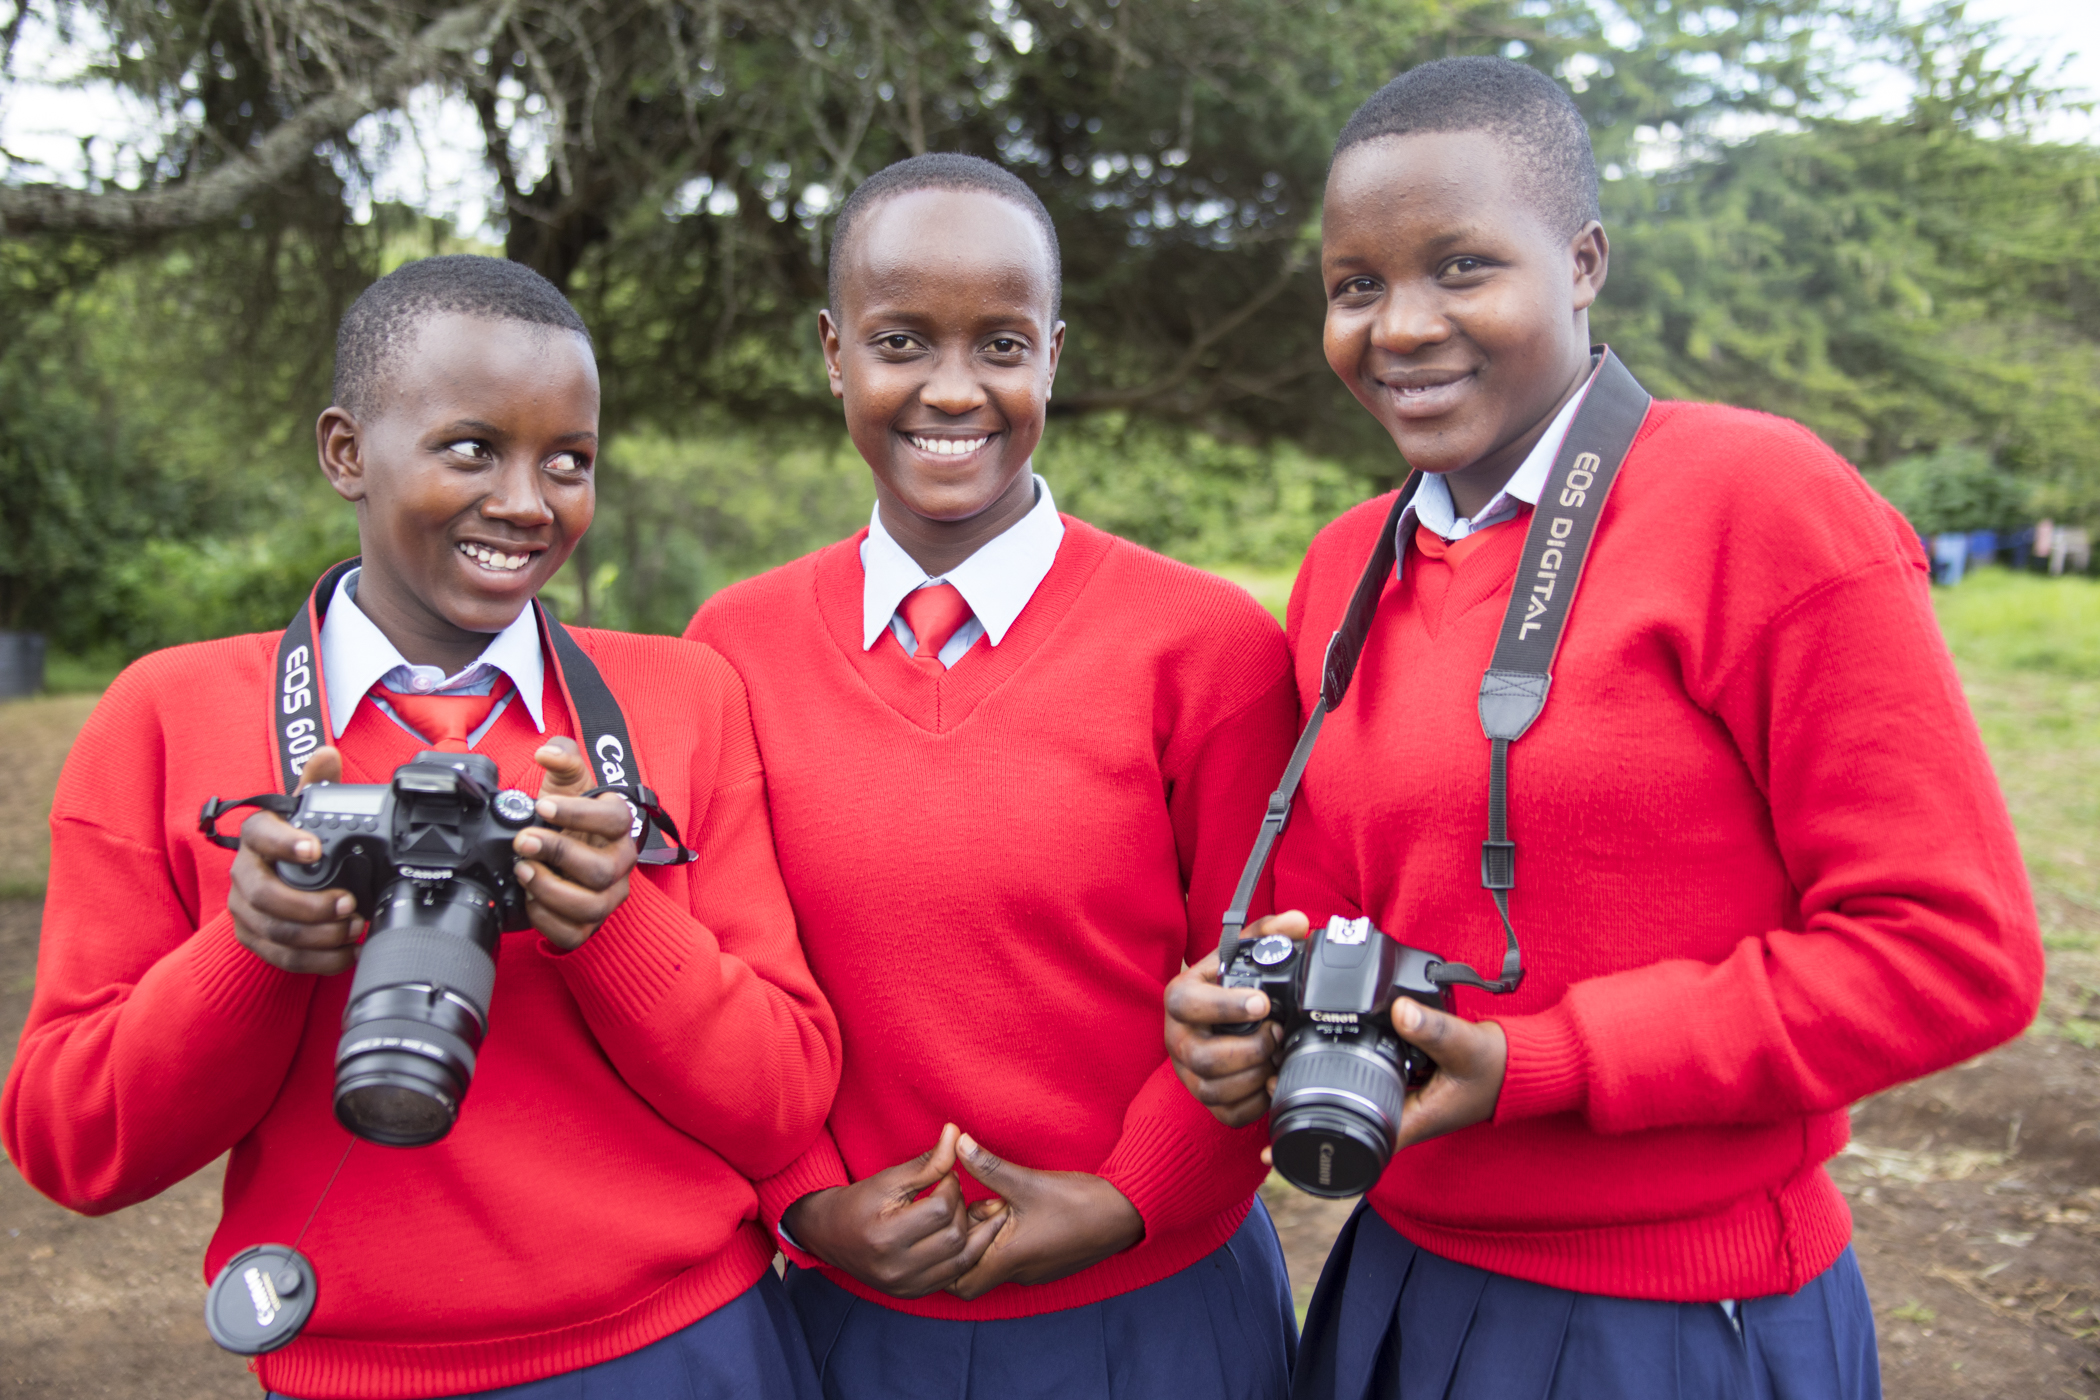 Orkeeswa Student Photography Club